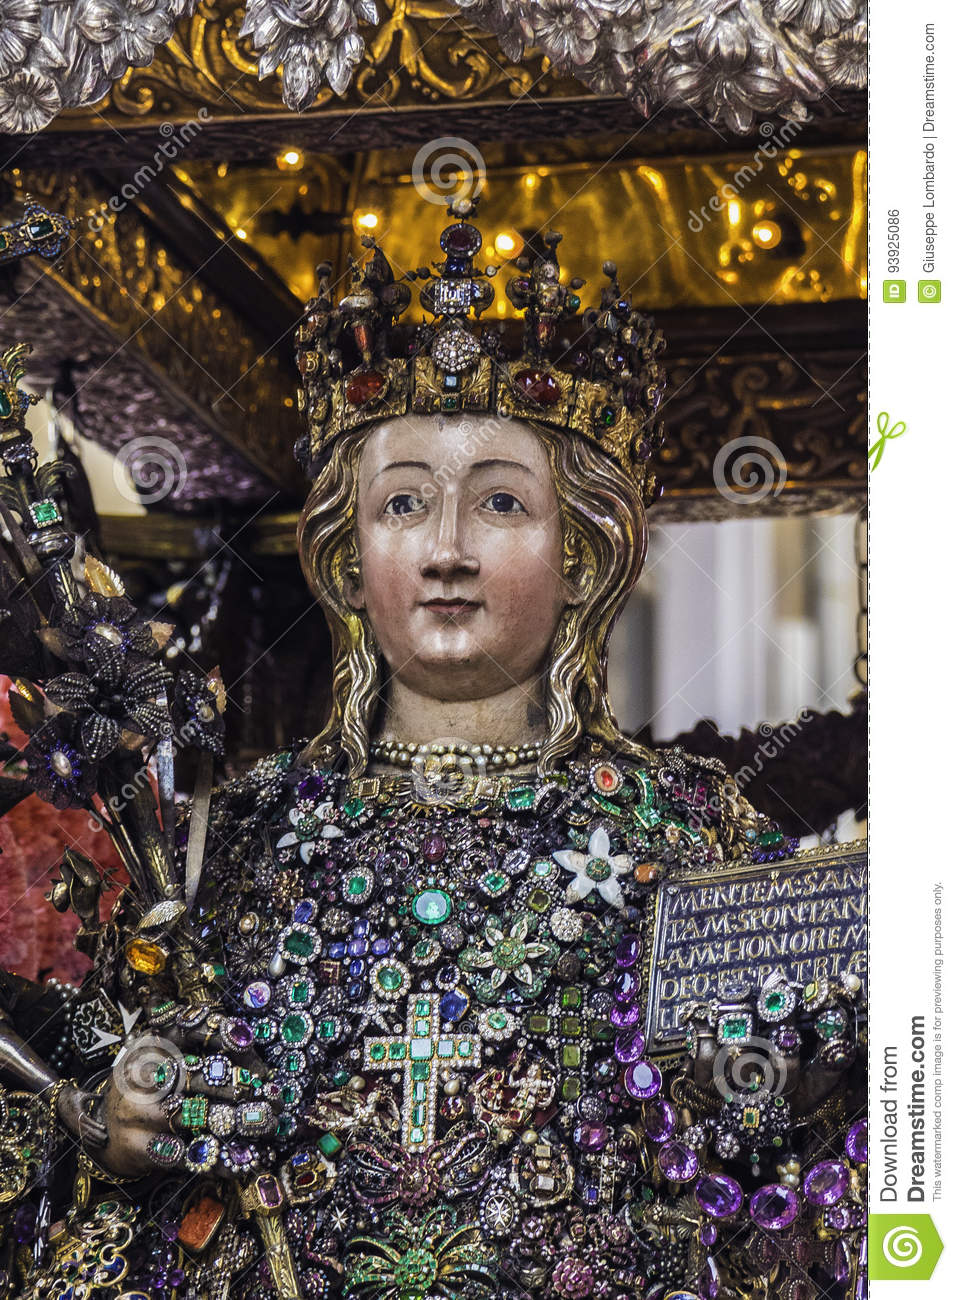 saint-agatha-sant-agata-devotion-february-catania-italy-celebrations-fe-93925086[1]